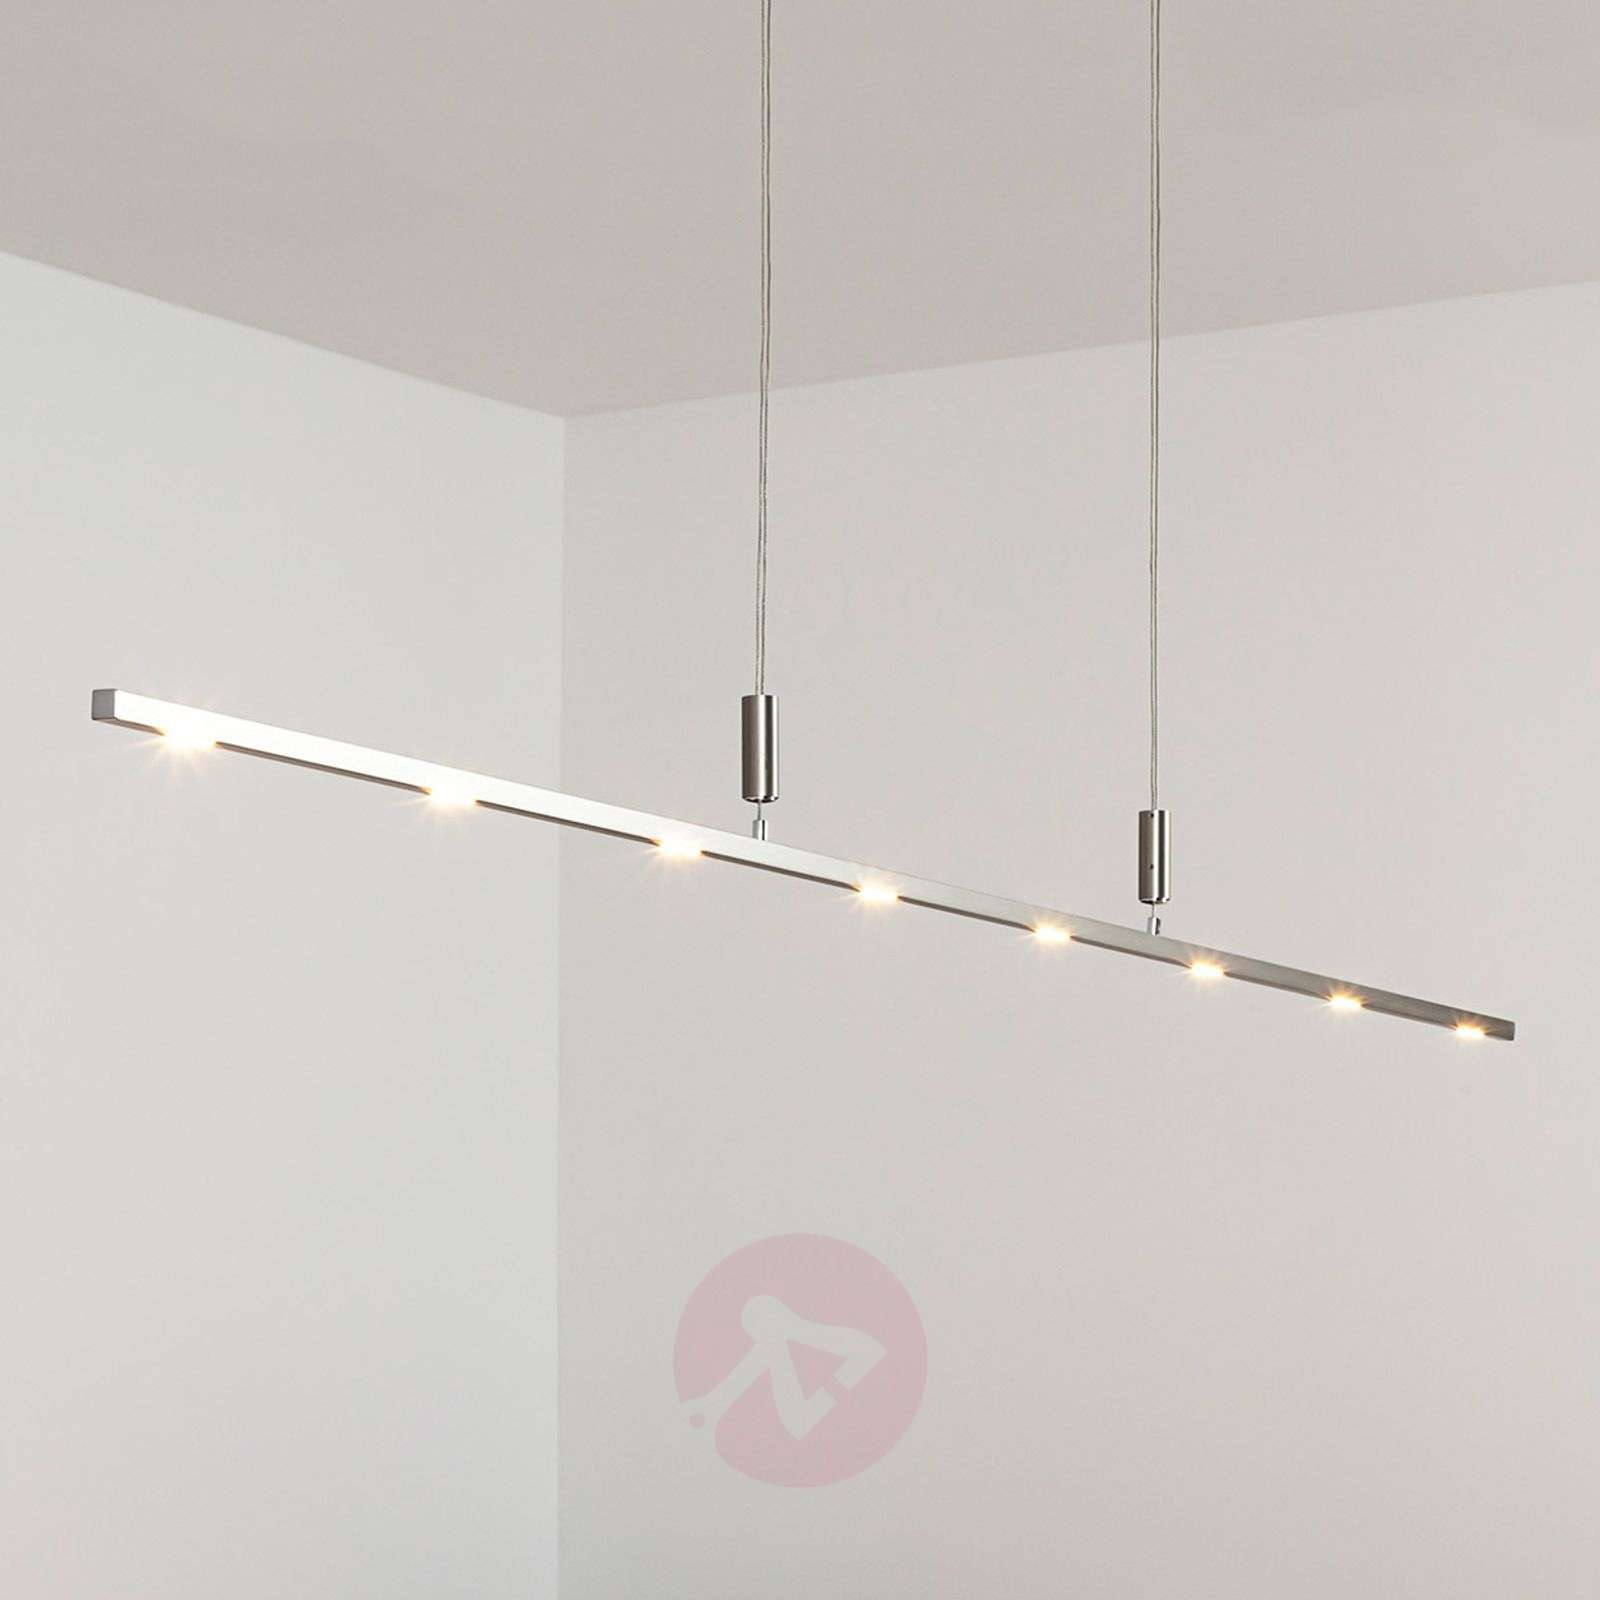 Lámpara LED suspendida Tolu 180 cm, intens. regul.-6722003-012